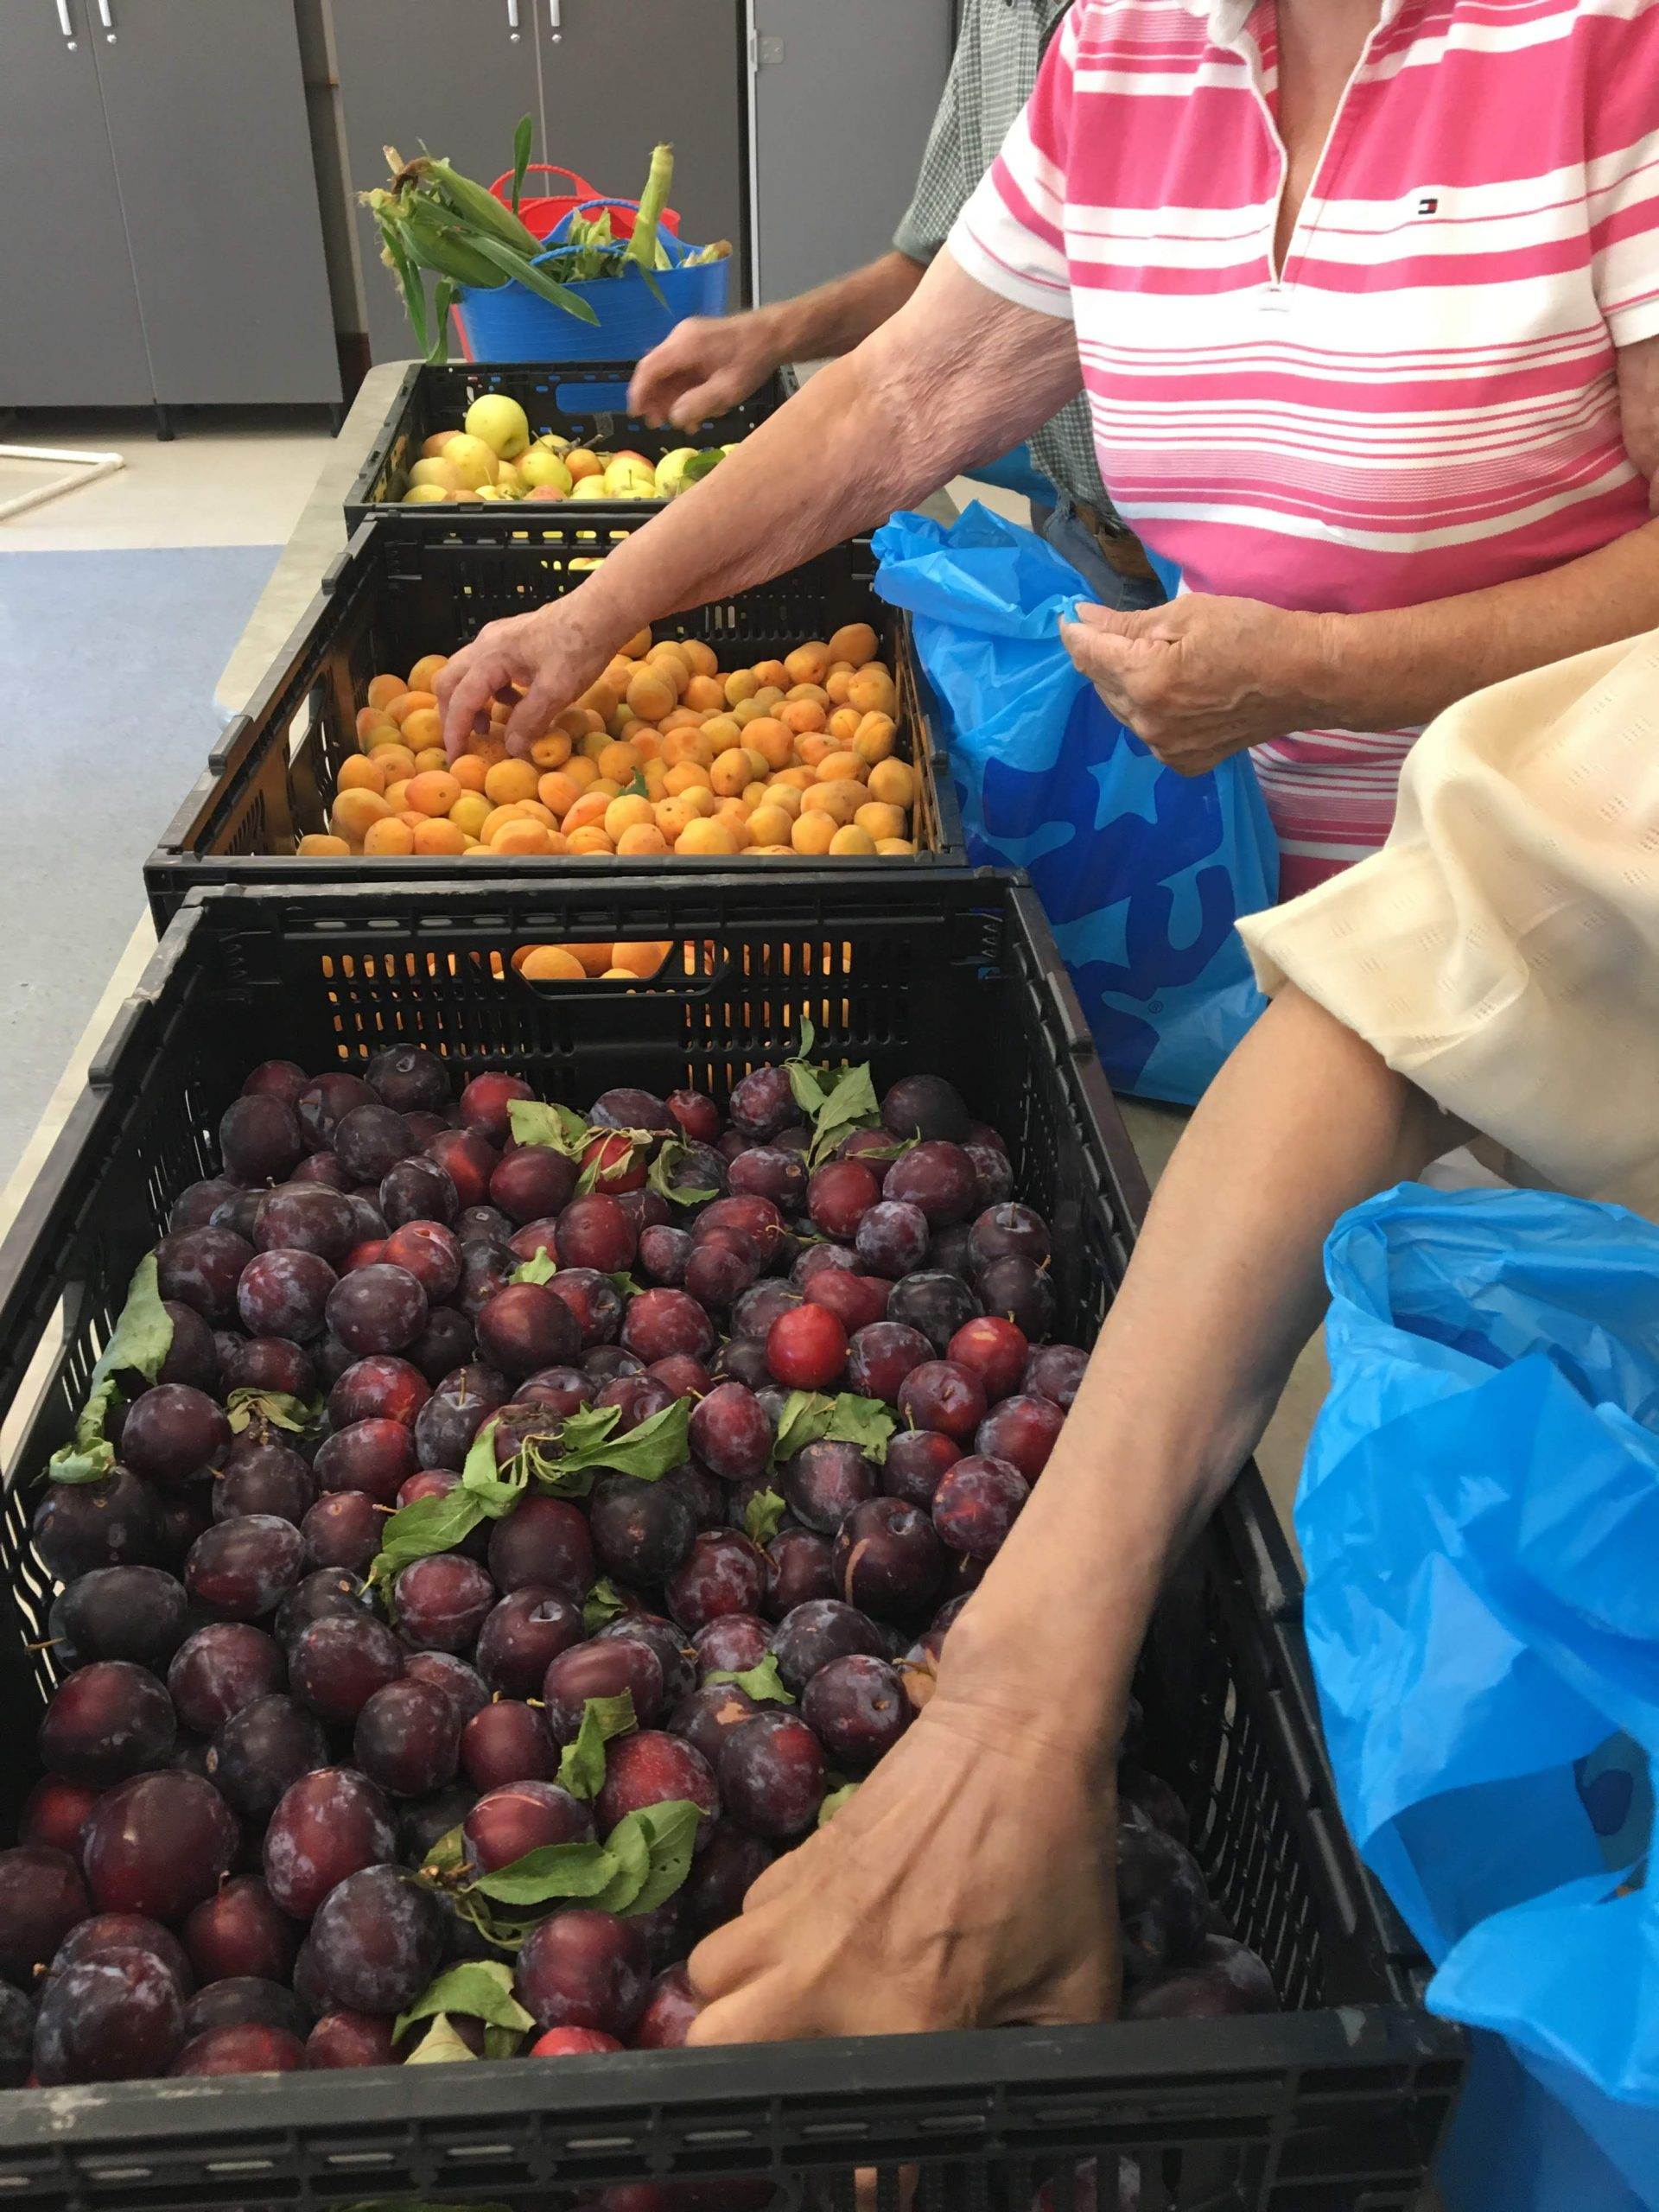 Seniors participating at a free Farm Stand. In the front of the line, a senior in a yellow short sleeve shirt is selecting plums from a black bin. Next to them is a senior woman in a pink and white striped polo selecting apricots from a black bin. In the back of the line is a senior man in a grey striped polo selecting apples from a black bin and corn from red and blue buckets. All three seniors are placing their produce in blue plastic Toys-R-Us bags.